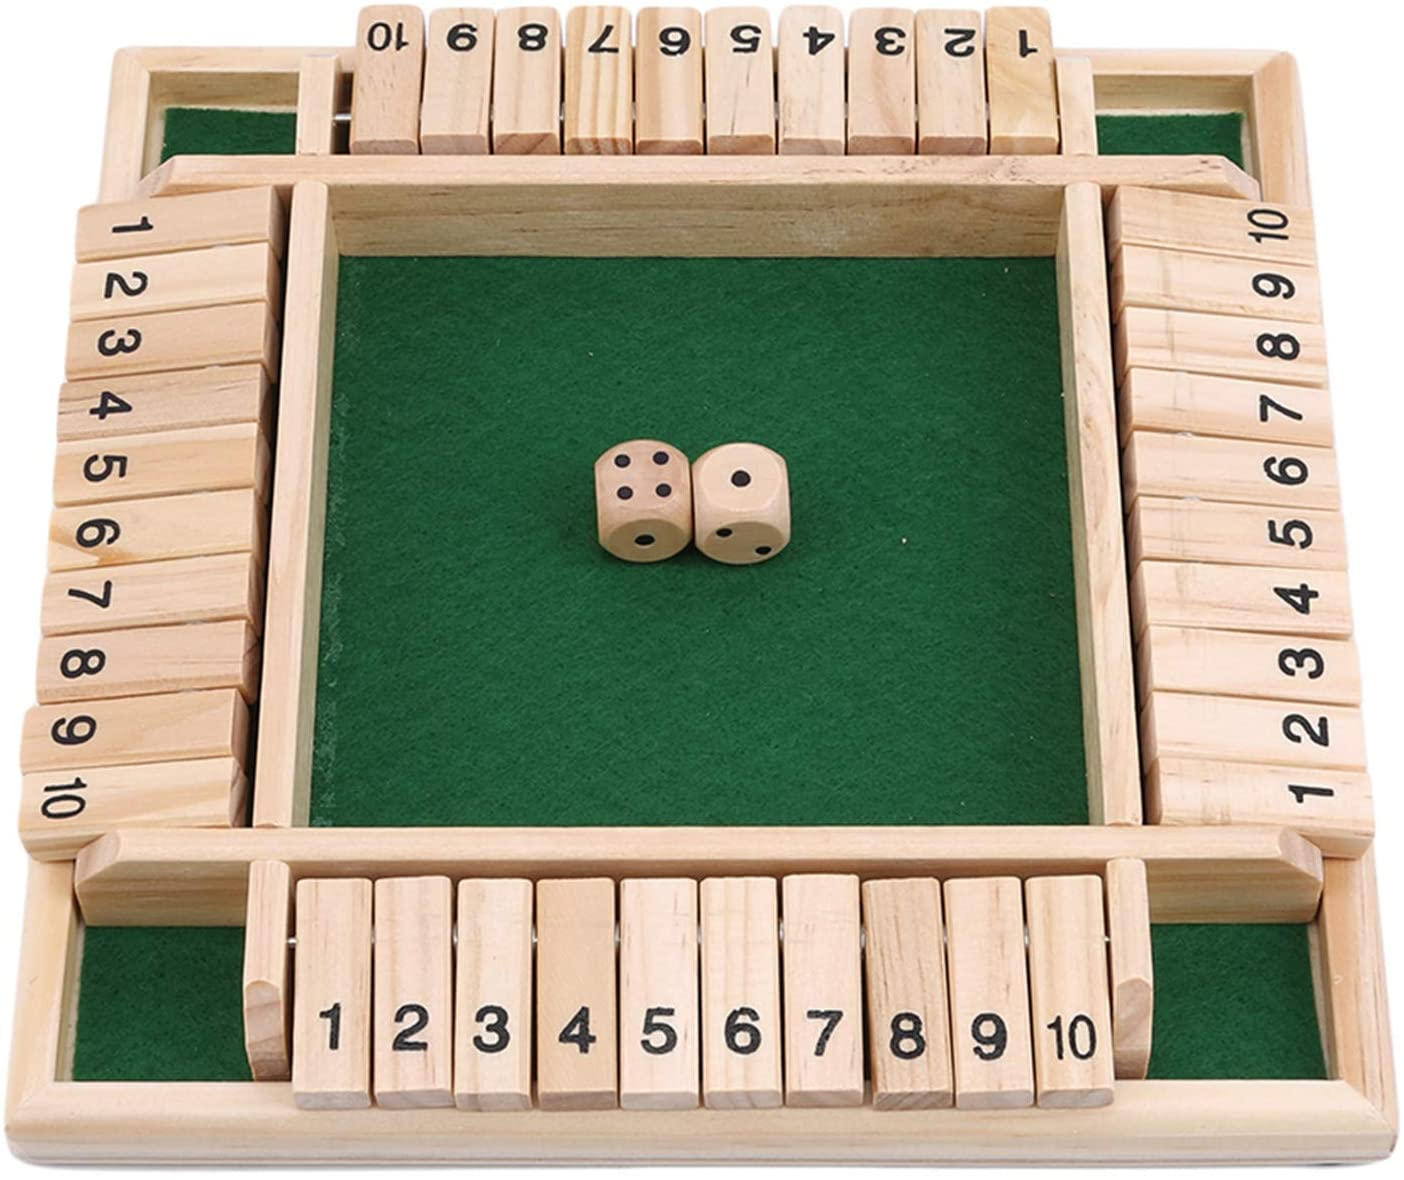 Winwinfly 1Set 4 Sided Large Wooden Board Game, 8 Dice & Shut-The-Box Rules Smart Game for Learning Numbers, Strategy & Risk Management Shut The Box Dice Game (2-4 Players) for Clever Kids & Adults